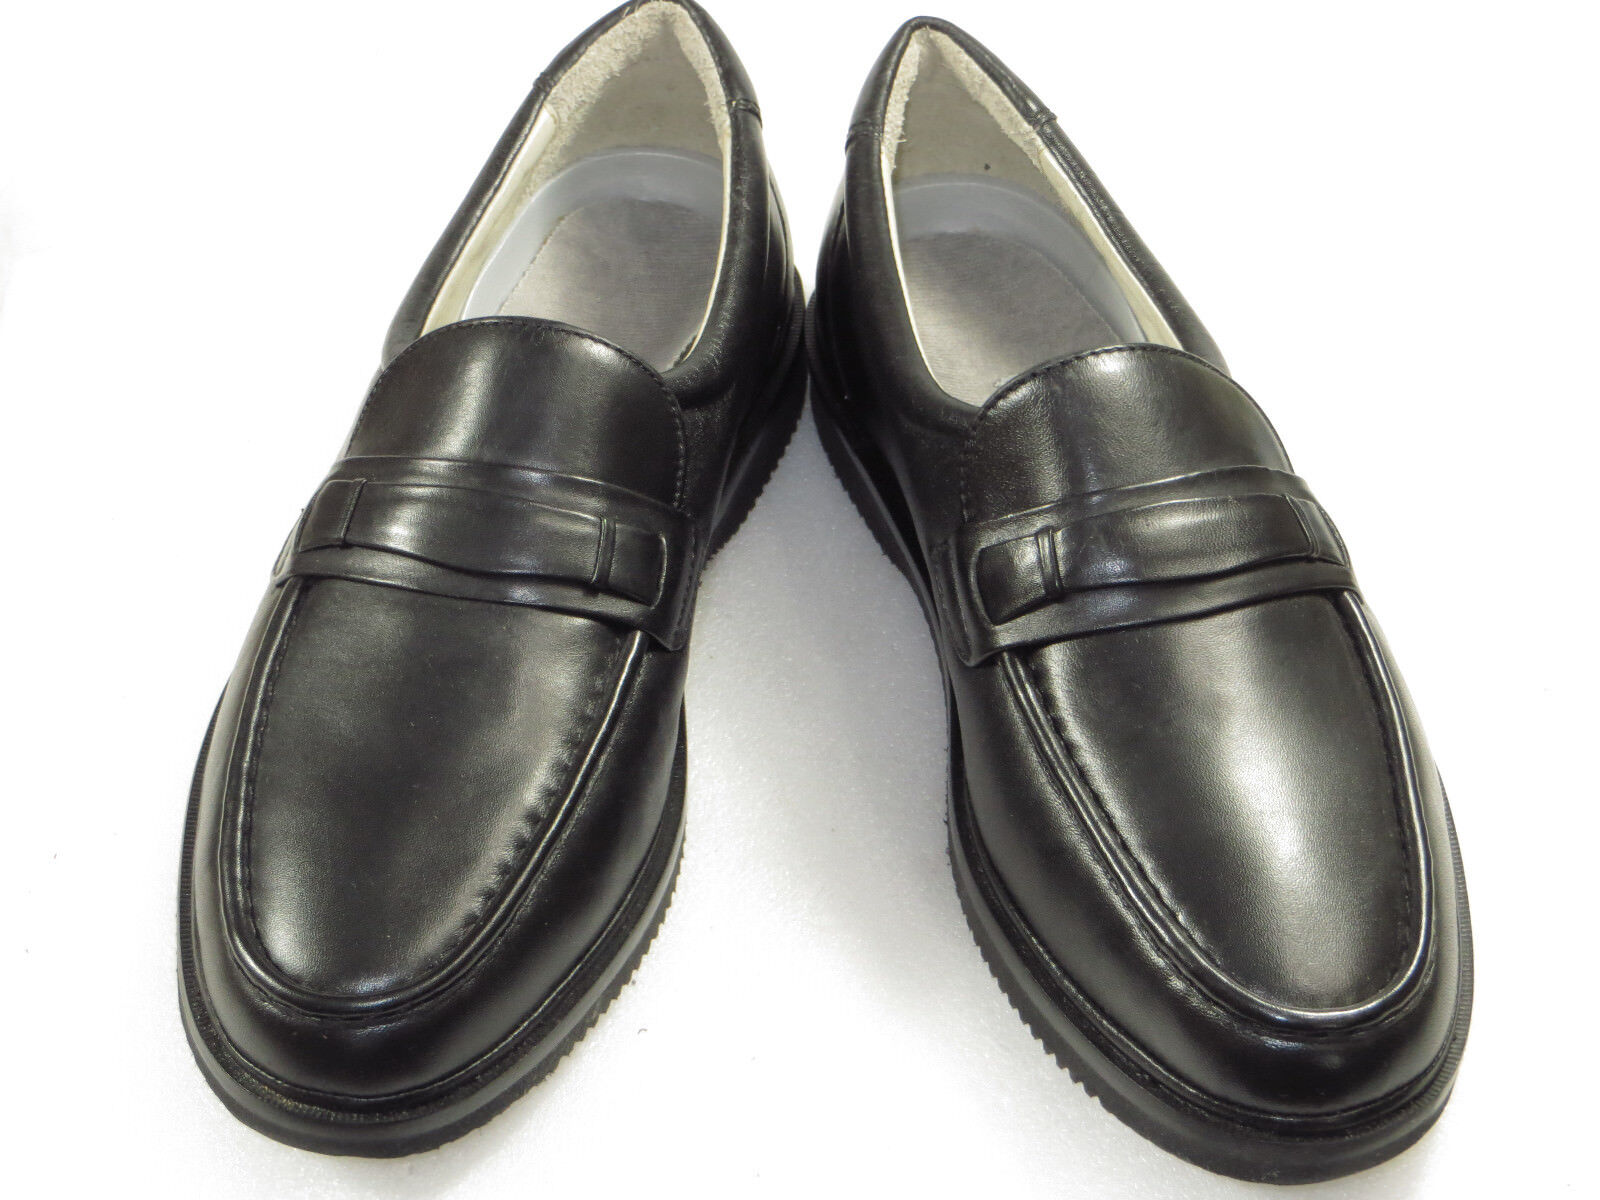 NWOB ROCKPORT Men's,slip on,loafer,light,comfy,walk,work,dress,Leather 9W 130